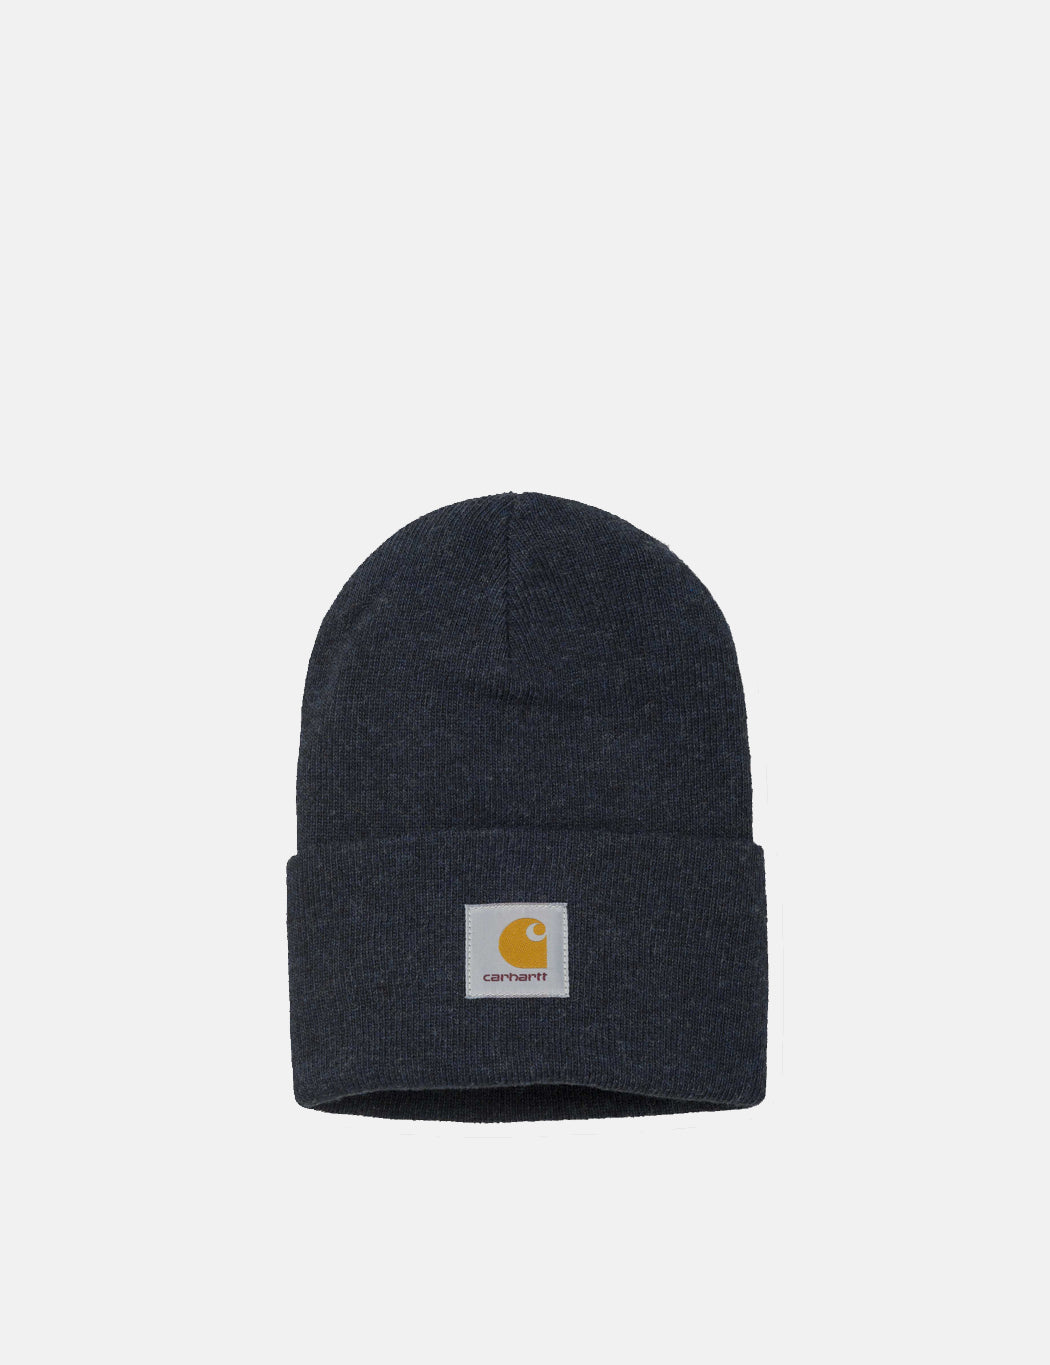 80f6856e9d7 Carhartt Watch Beanie Hat - Dark Navy Heather